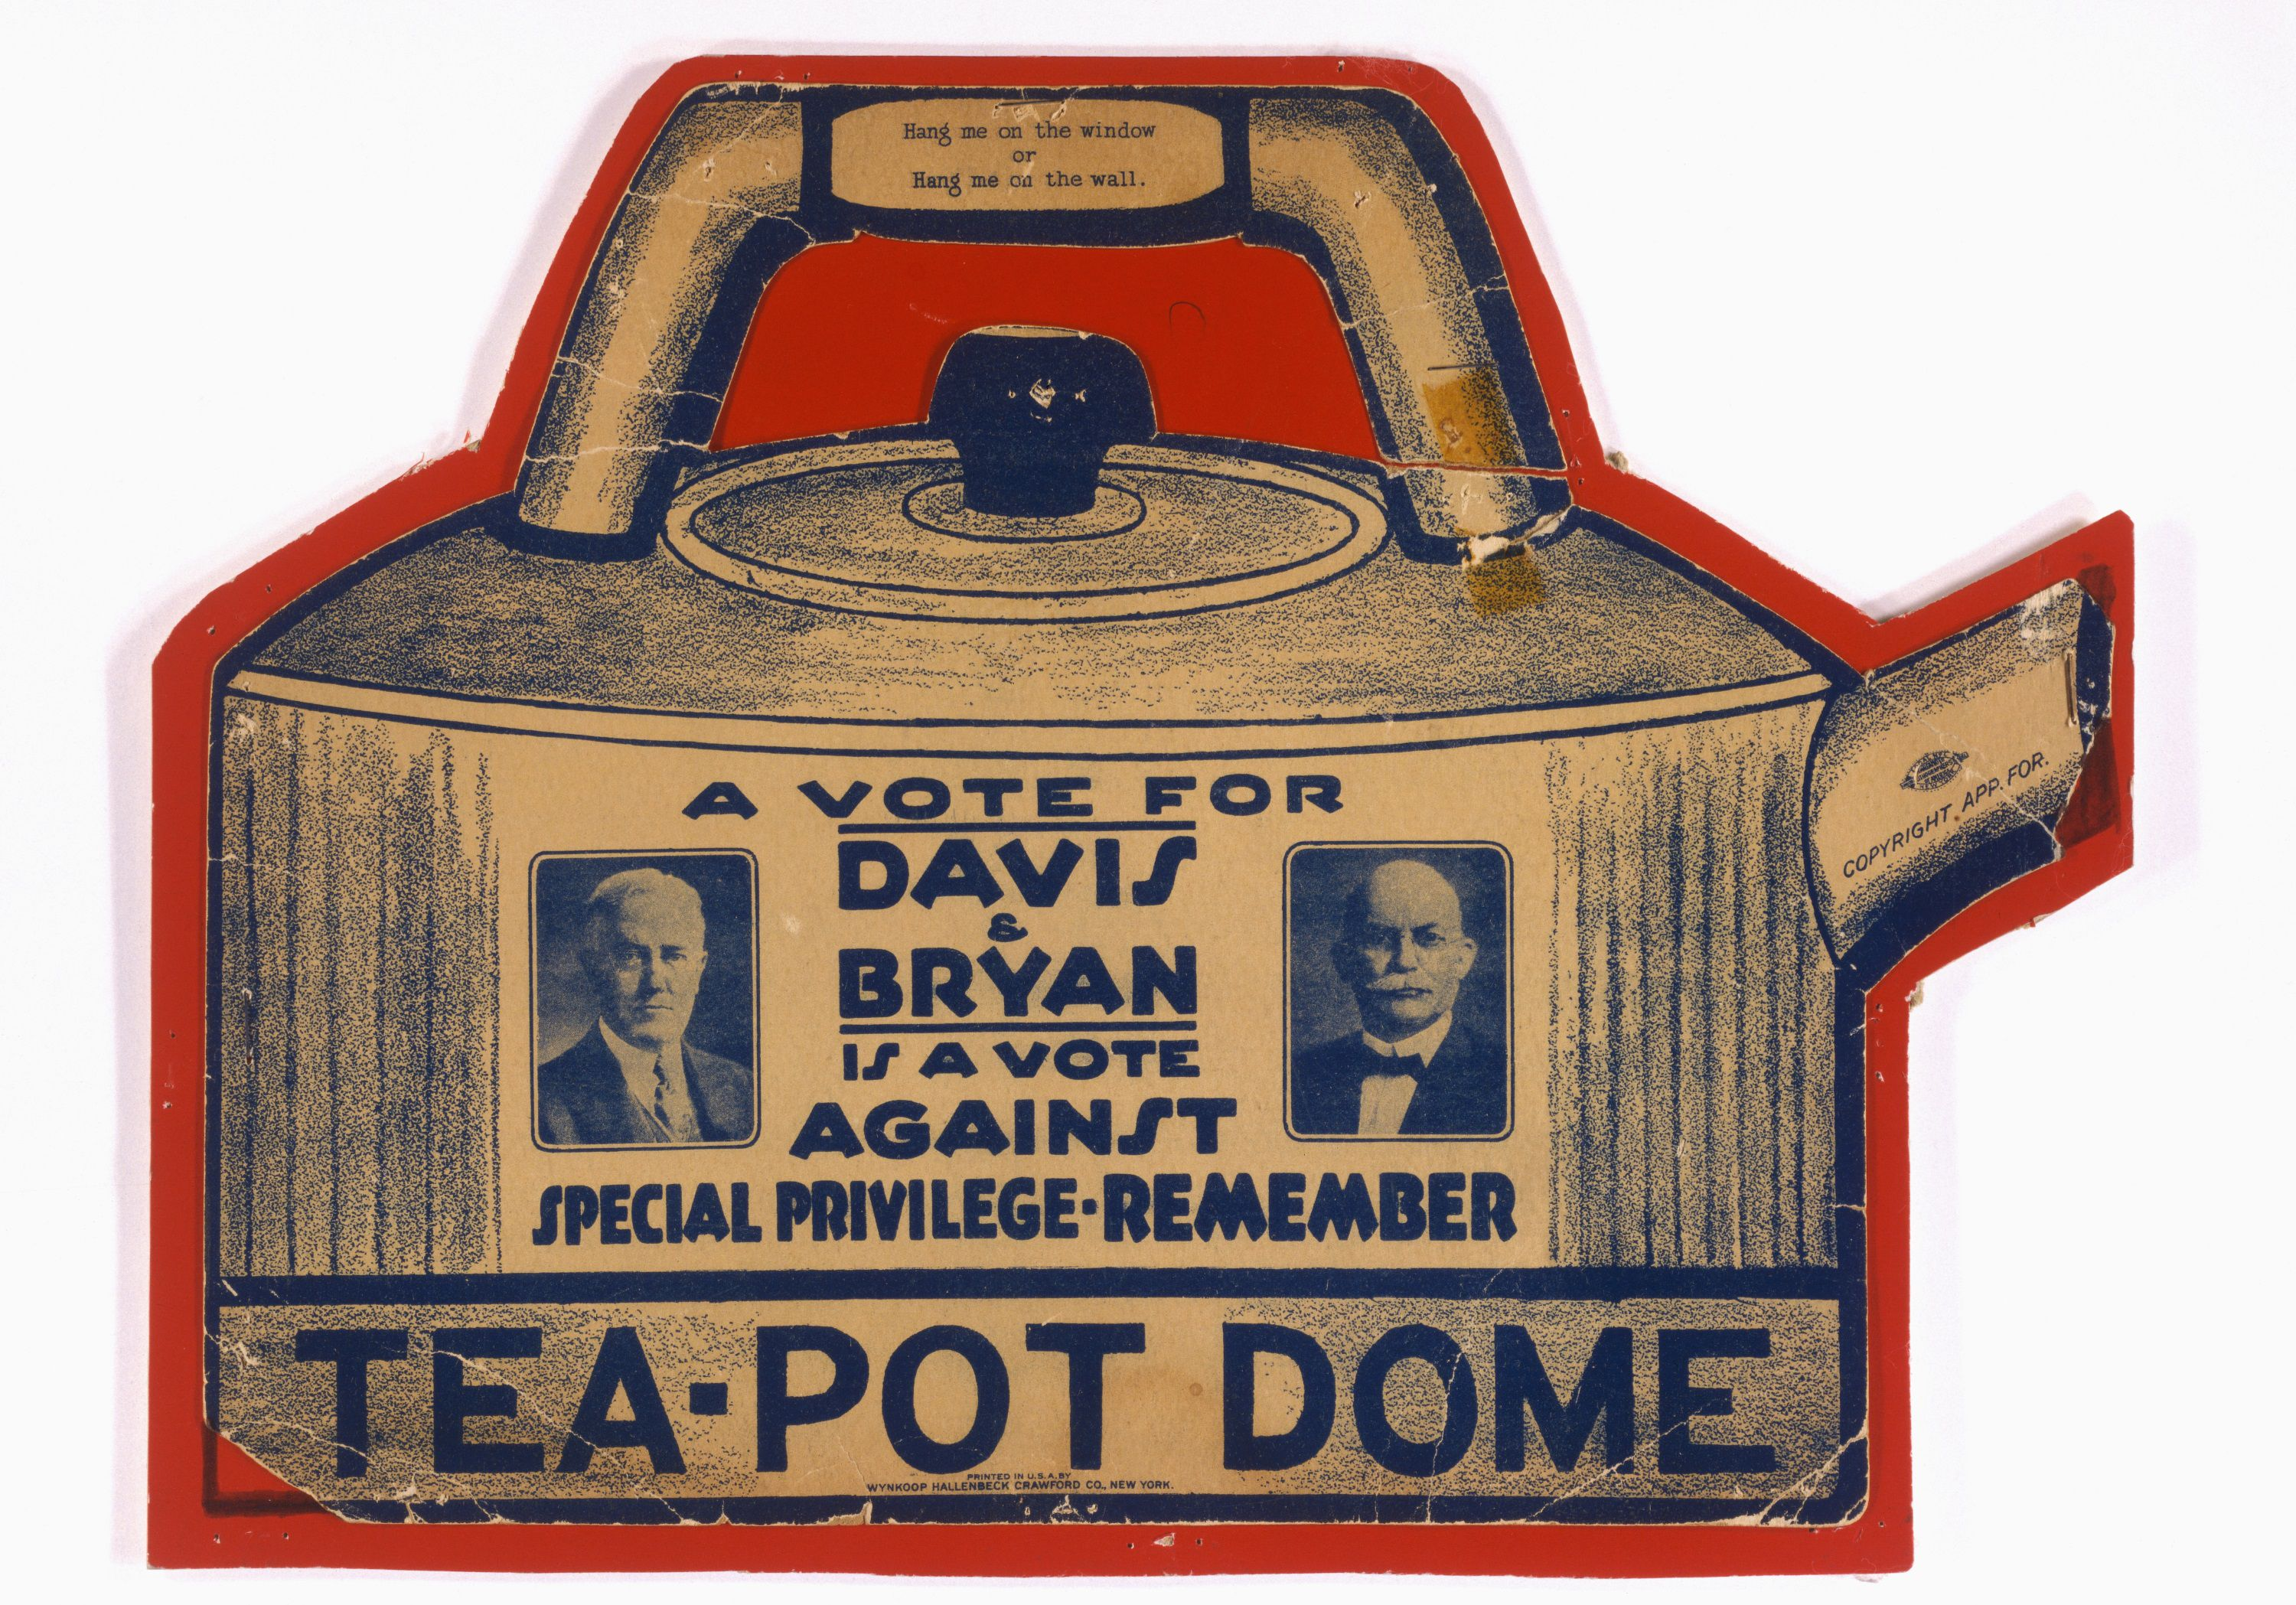 1924 election ad referring to Teapot Dome scandal